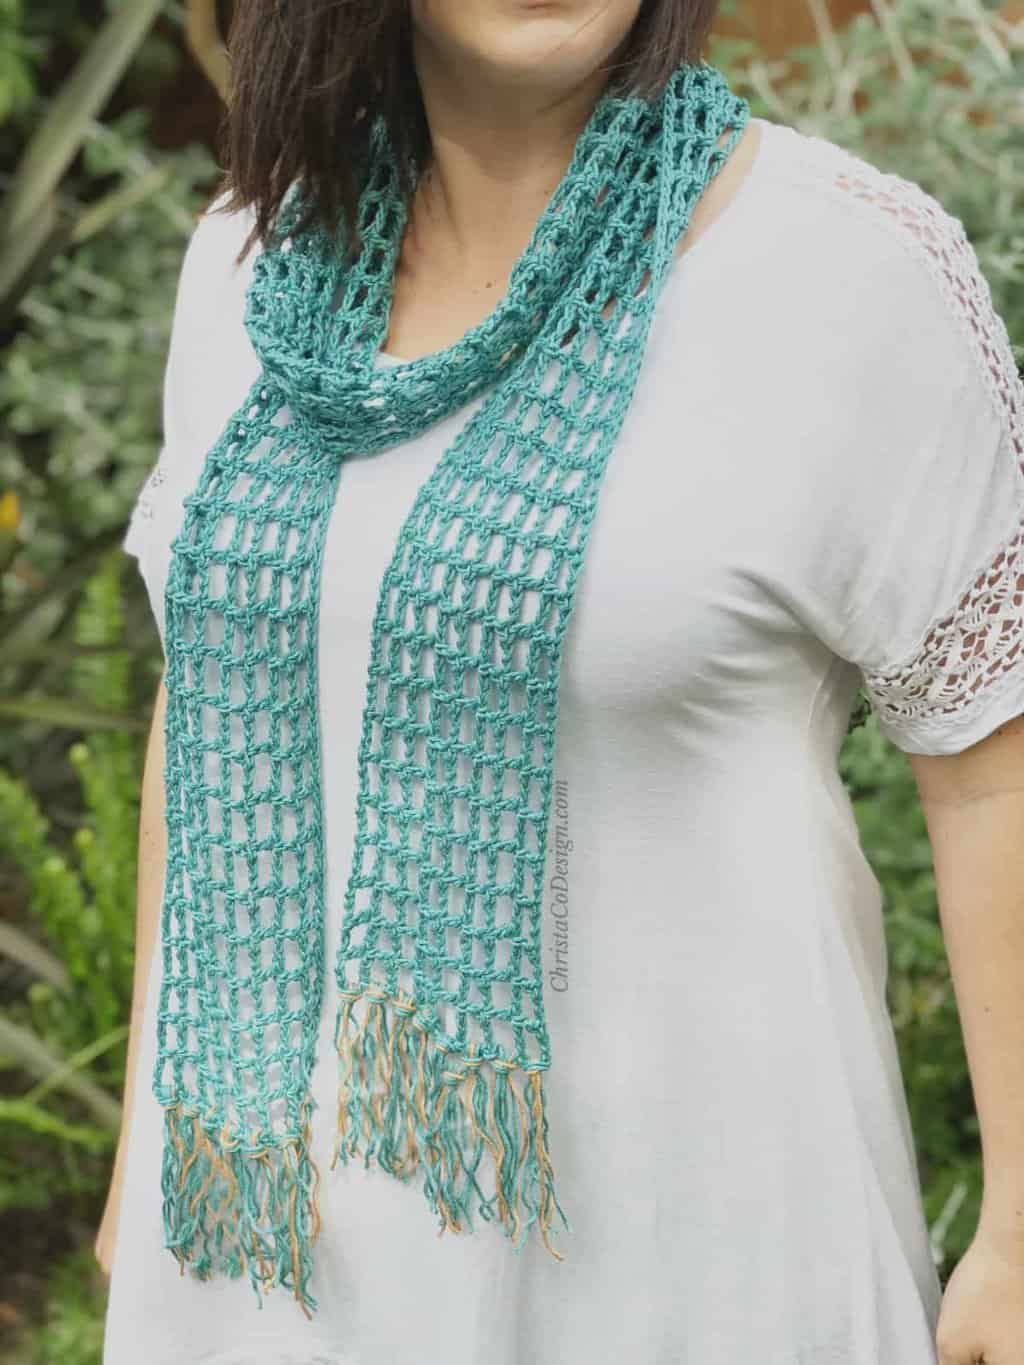 picture of woman wearing teal lace skinny summer scarf